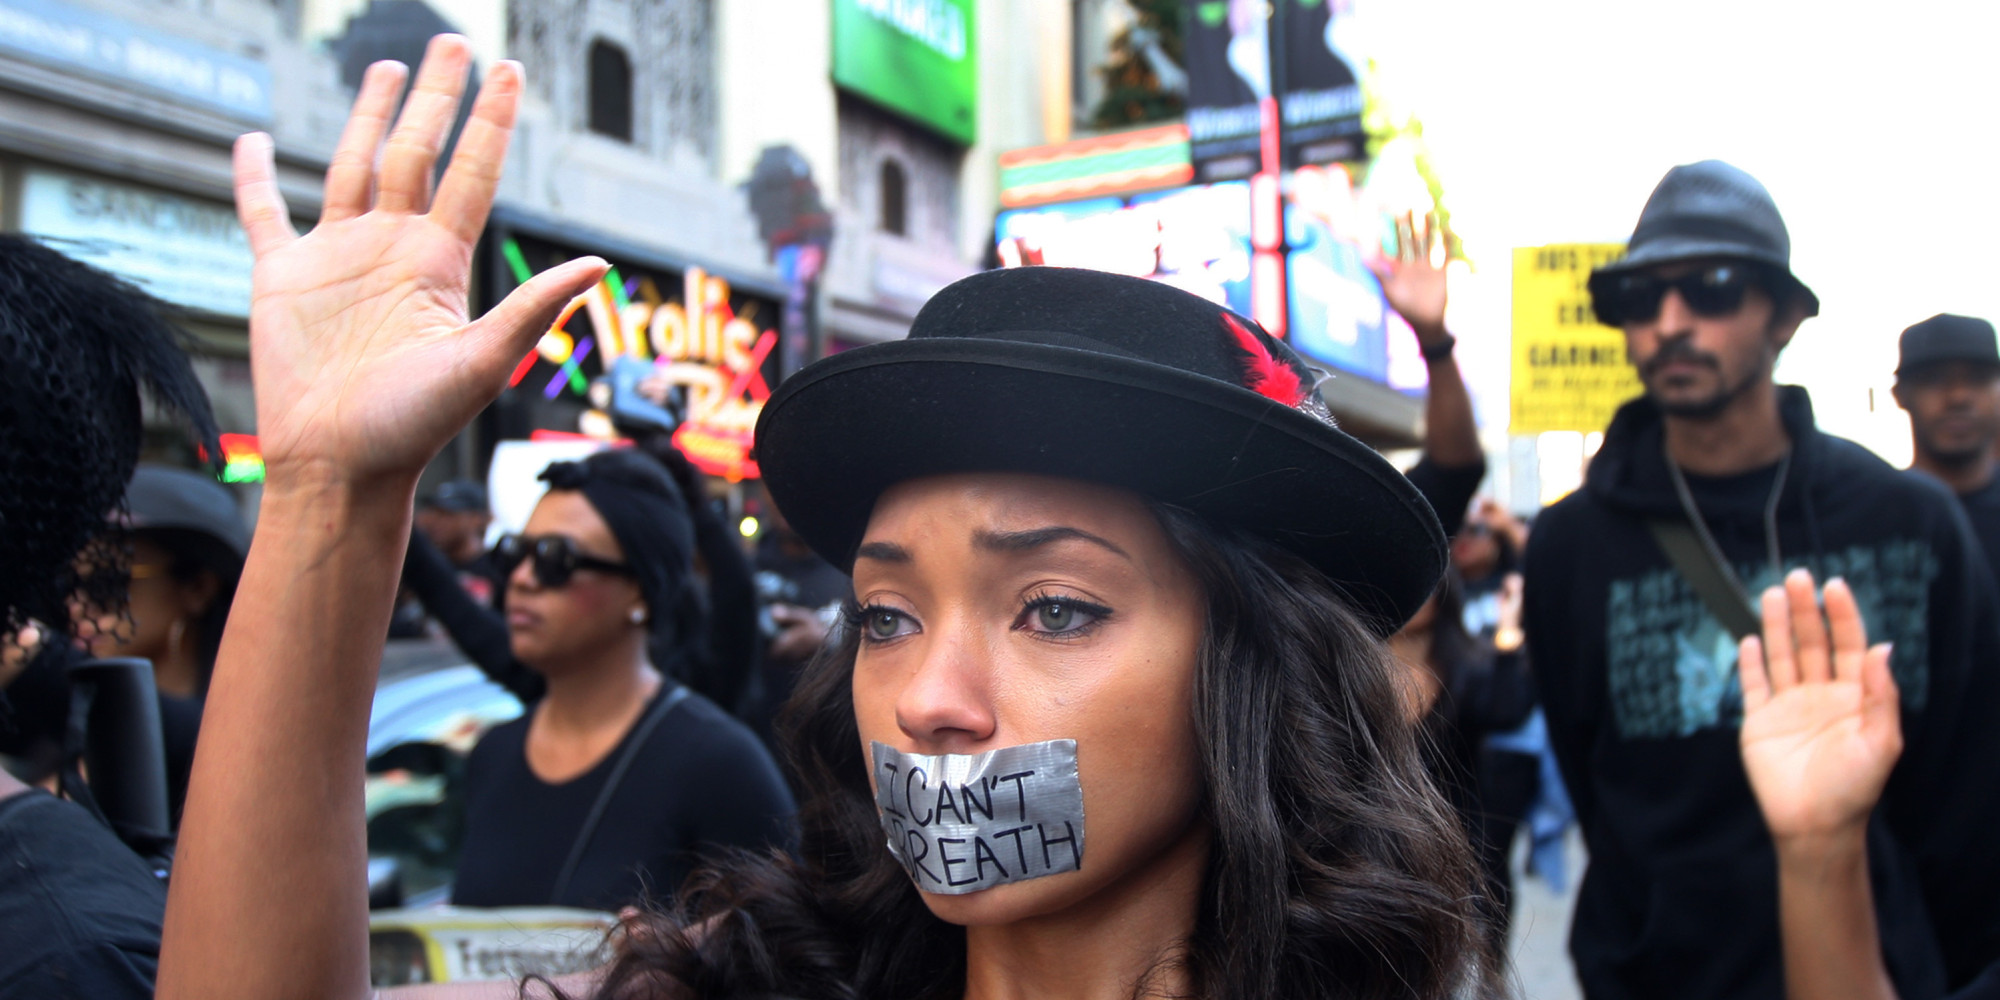 LOS ANGELES, CA - DECEMBER 6:  People march on Hollywood Boulevard in protest of the decision in New York not to indict a police officer involved in the choke-hold death of Eric Garner on December 6, 2014 in the Hollywood section of Los Angeles, California. The march passes the tourist attraction of Hollywood and Highland where, by coincidence, police shot and killed a man in the intersection. Police say that he had a knife.   (Photo by David McNew/Getty Images)